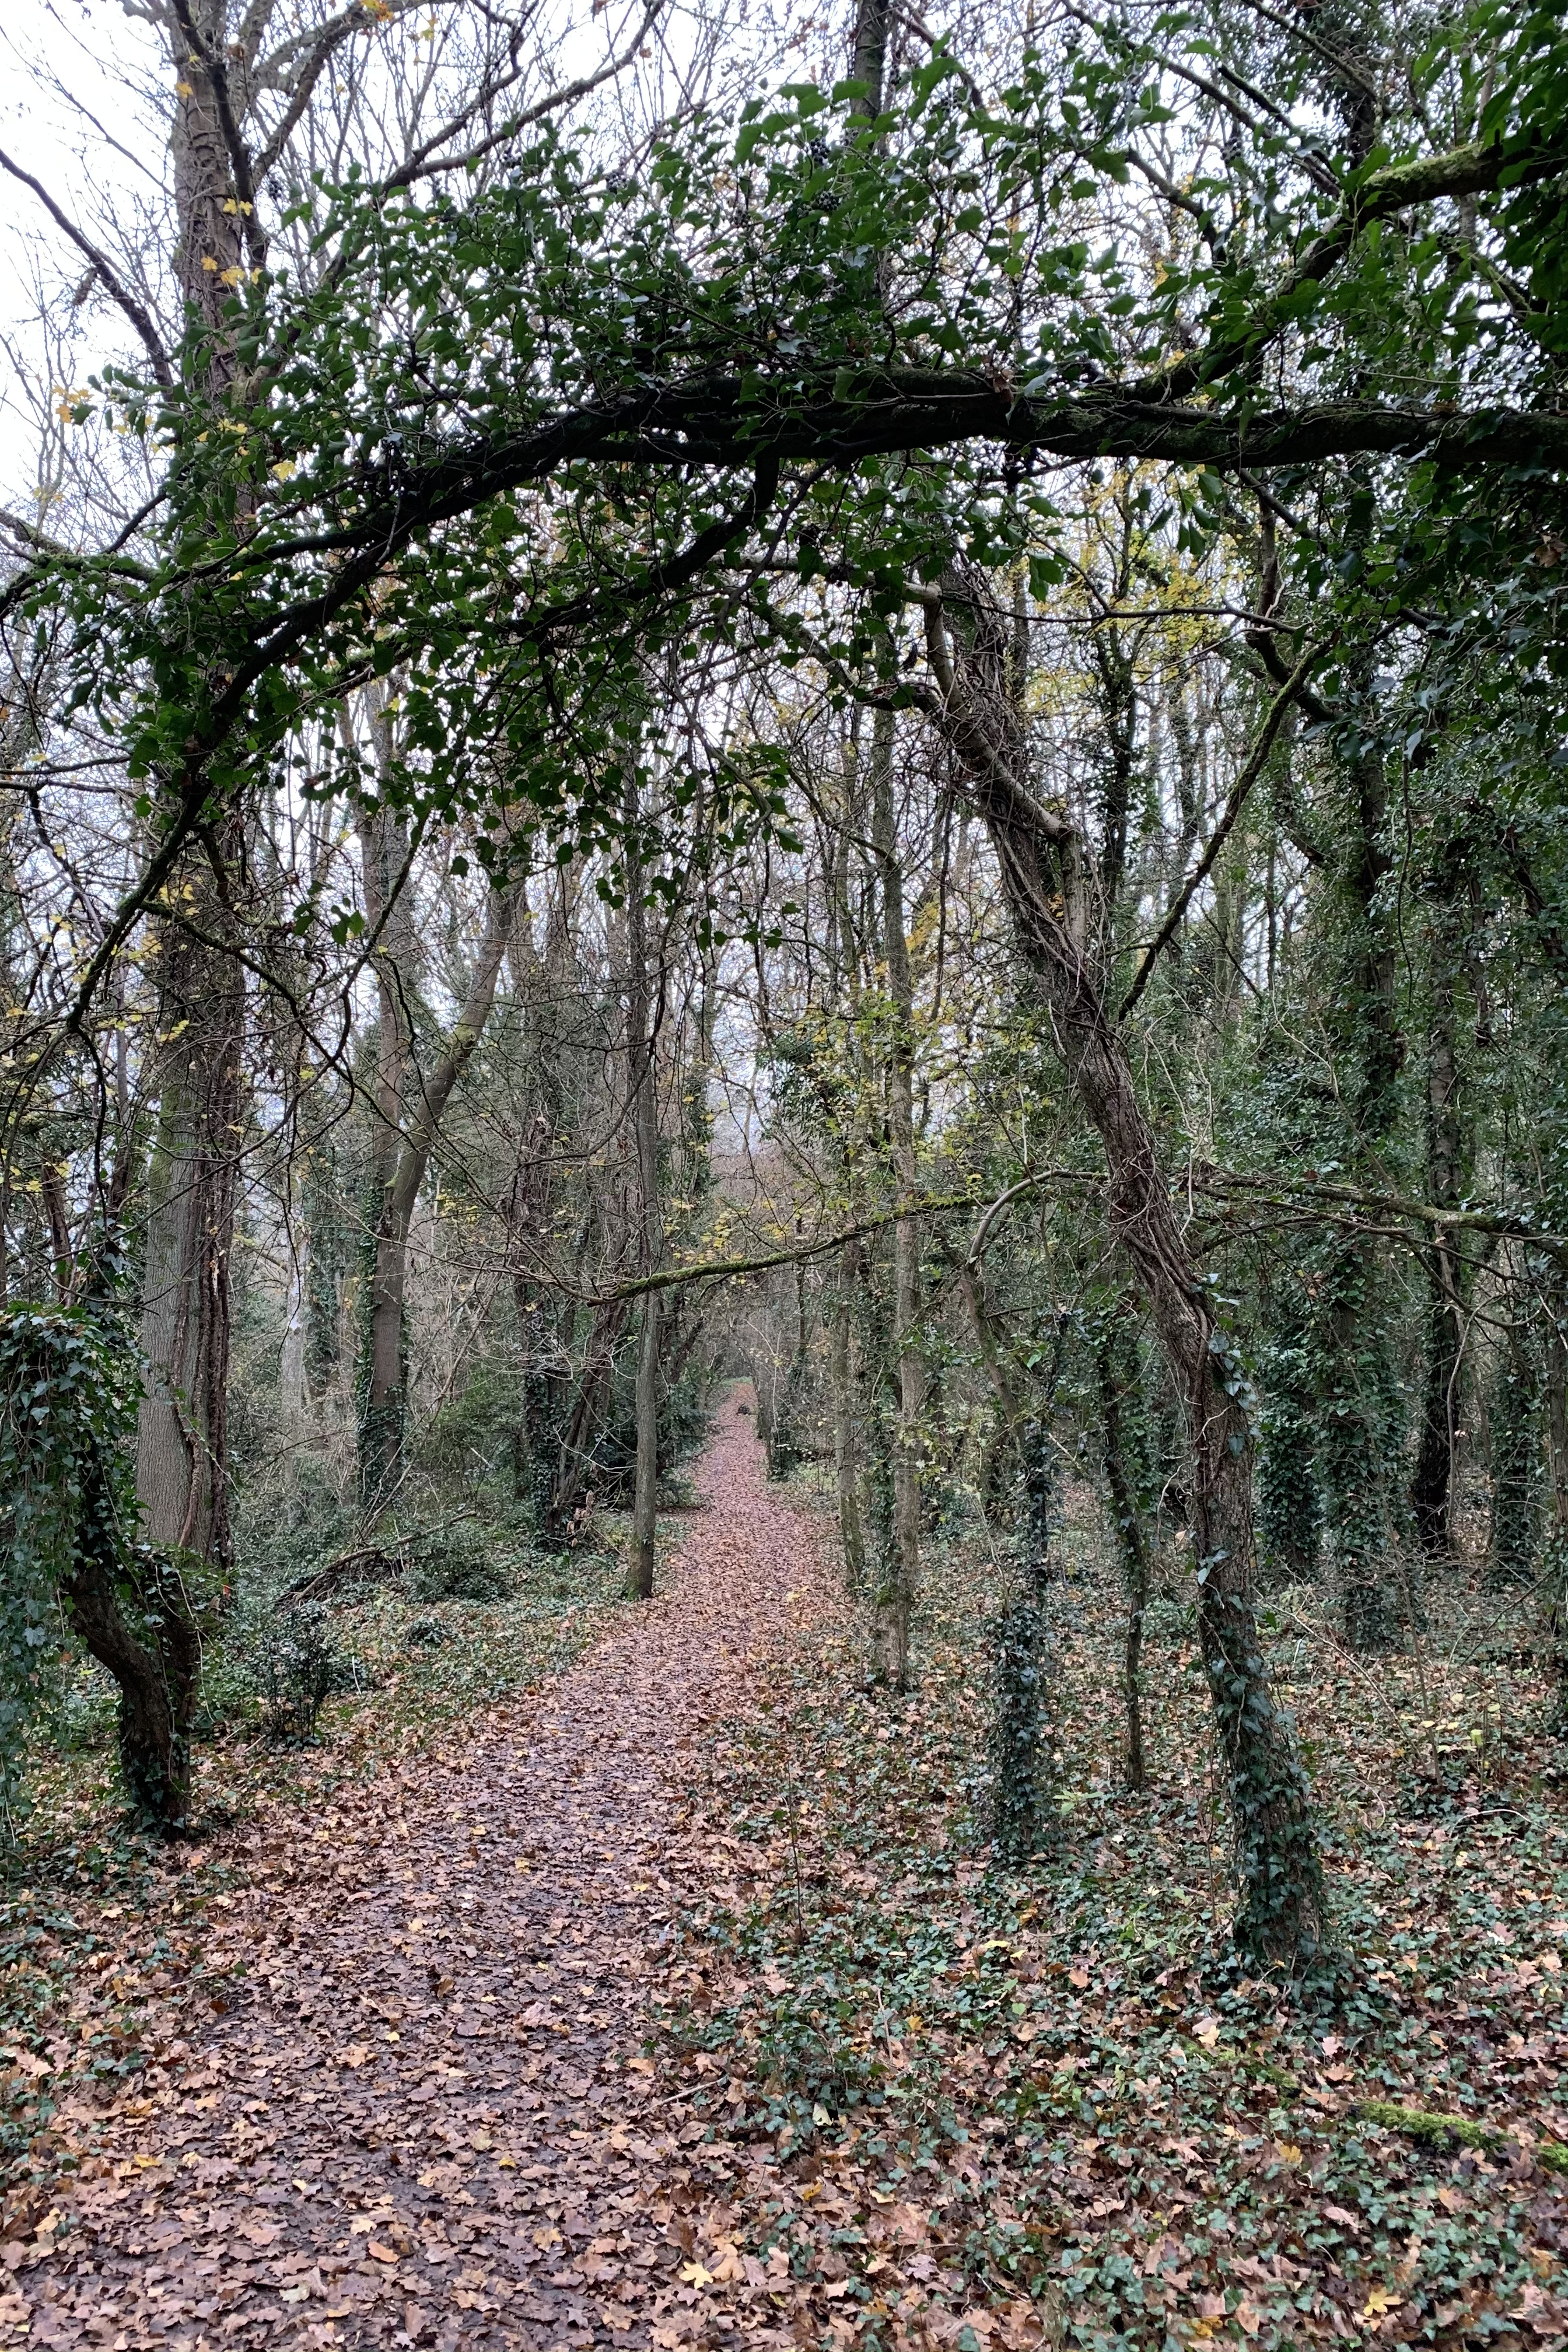 A leaf covered path leads towards the horizon, with trees marking both edges. It can clearly be seen that many of the trees are making archways that frame the path, like open doorways leading you on.